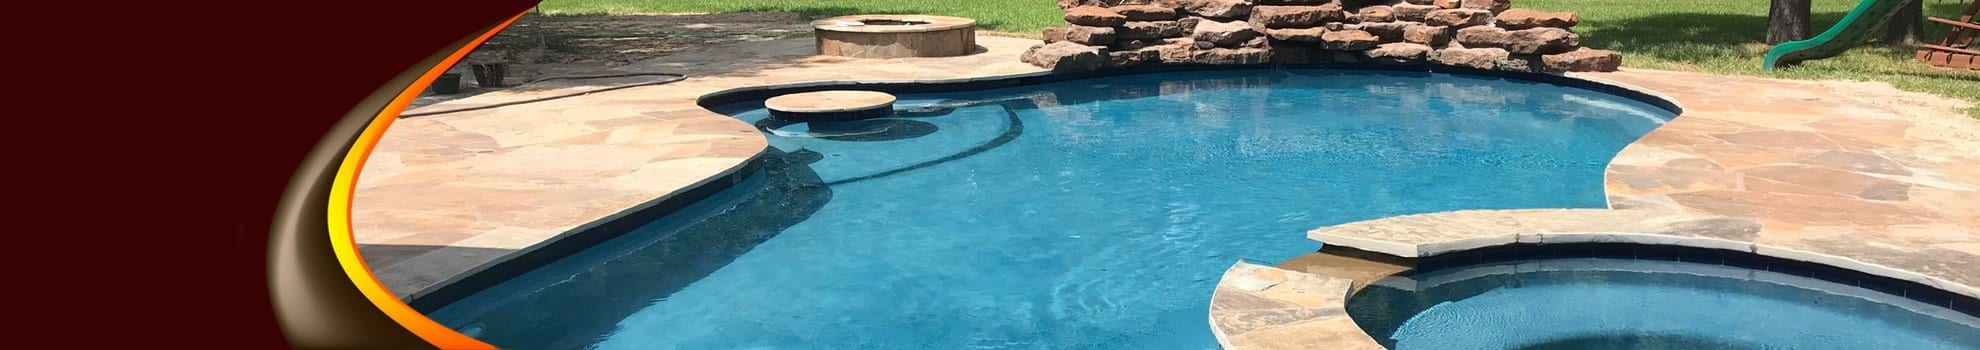 Pool Builder In Spring Texas Contact Us